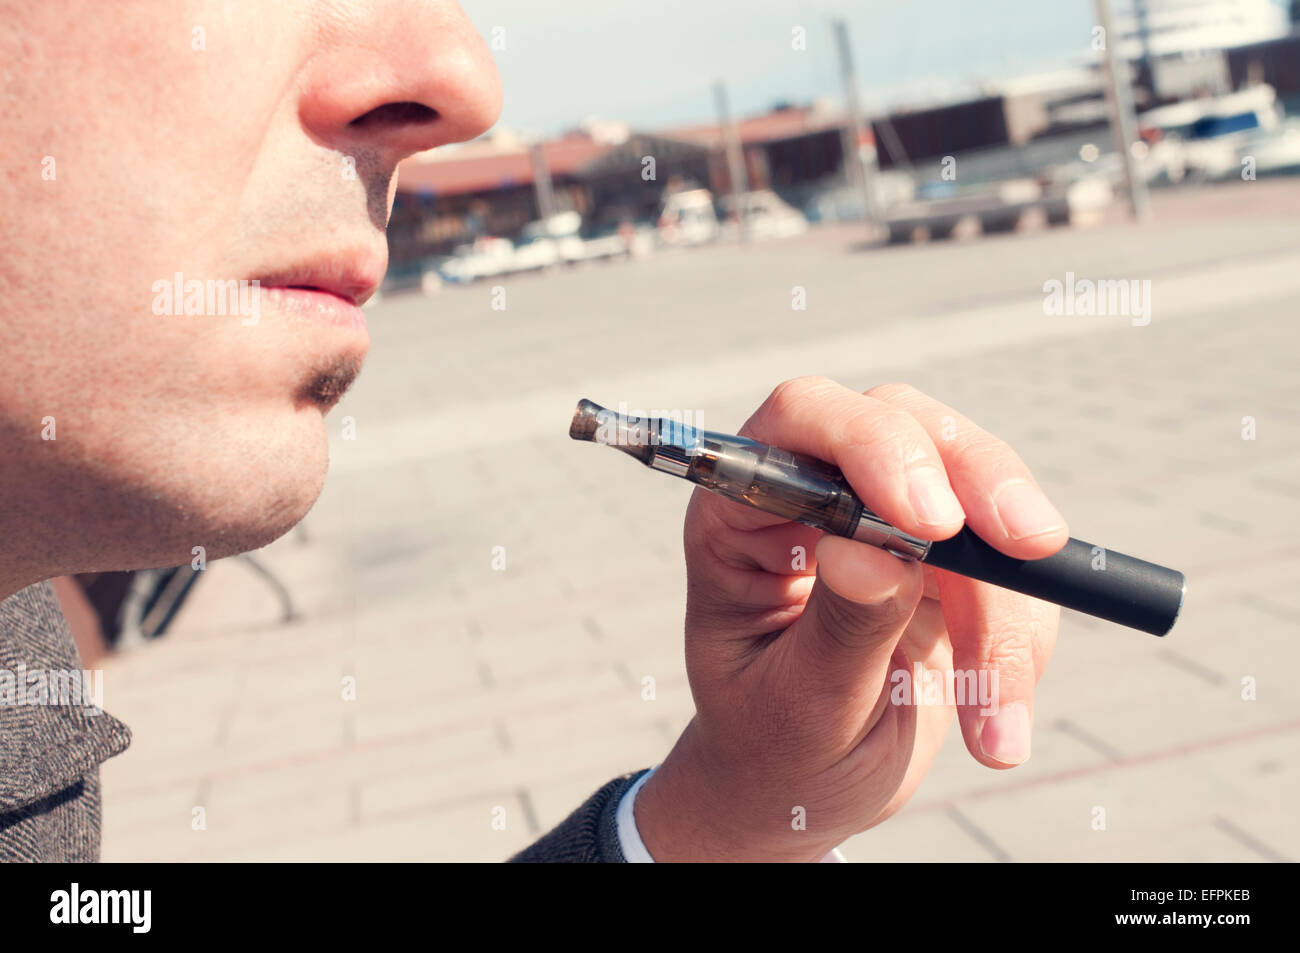 a young man vaping with an electronic cigarette - Stock Image